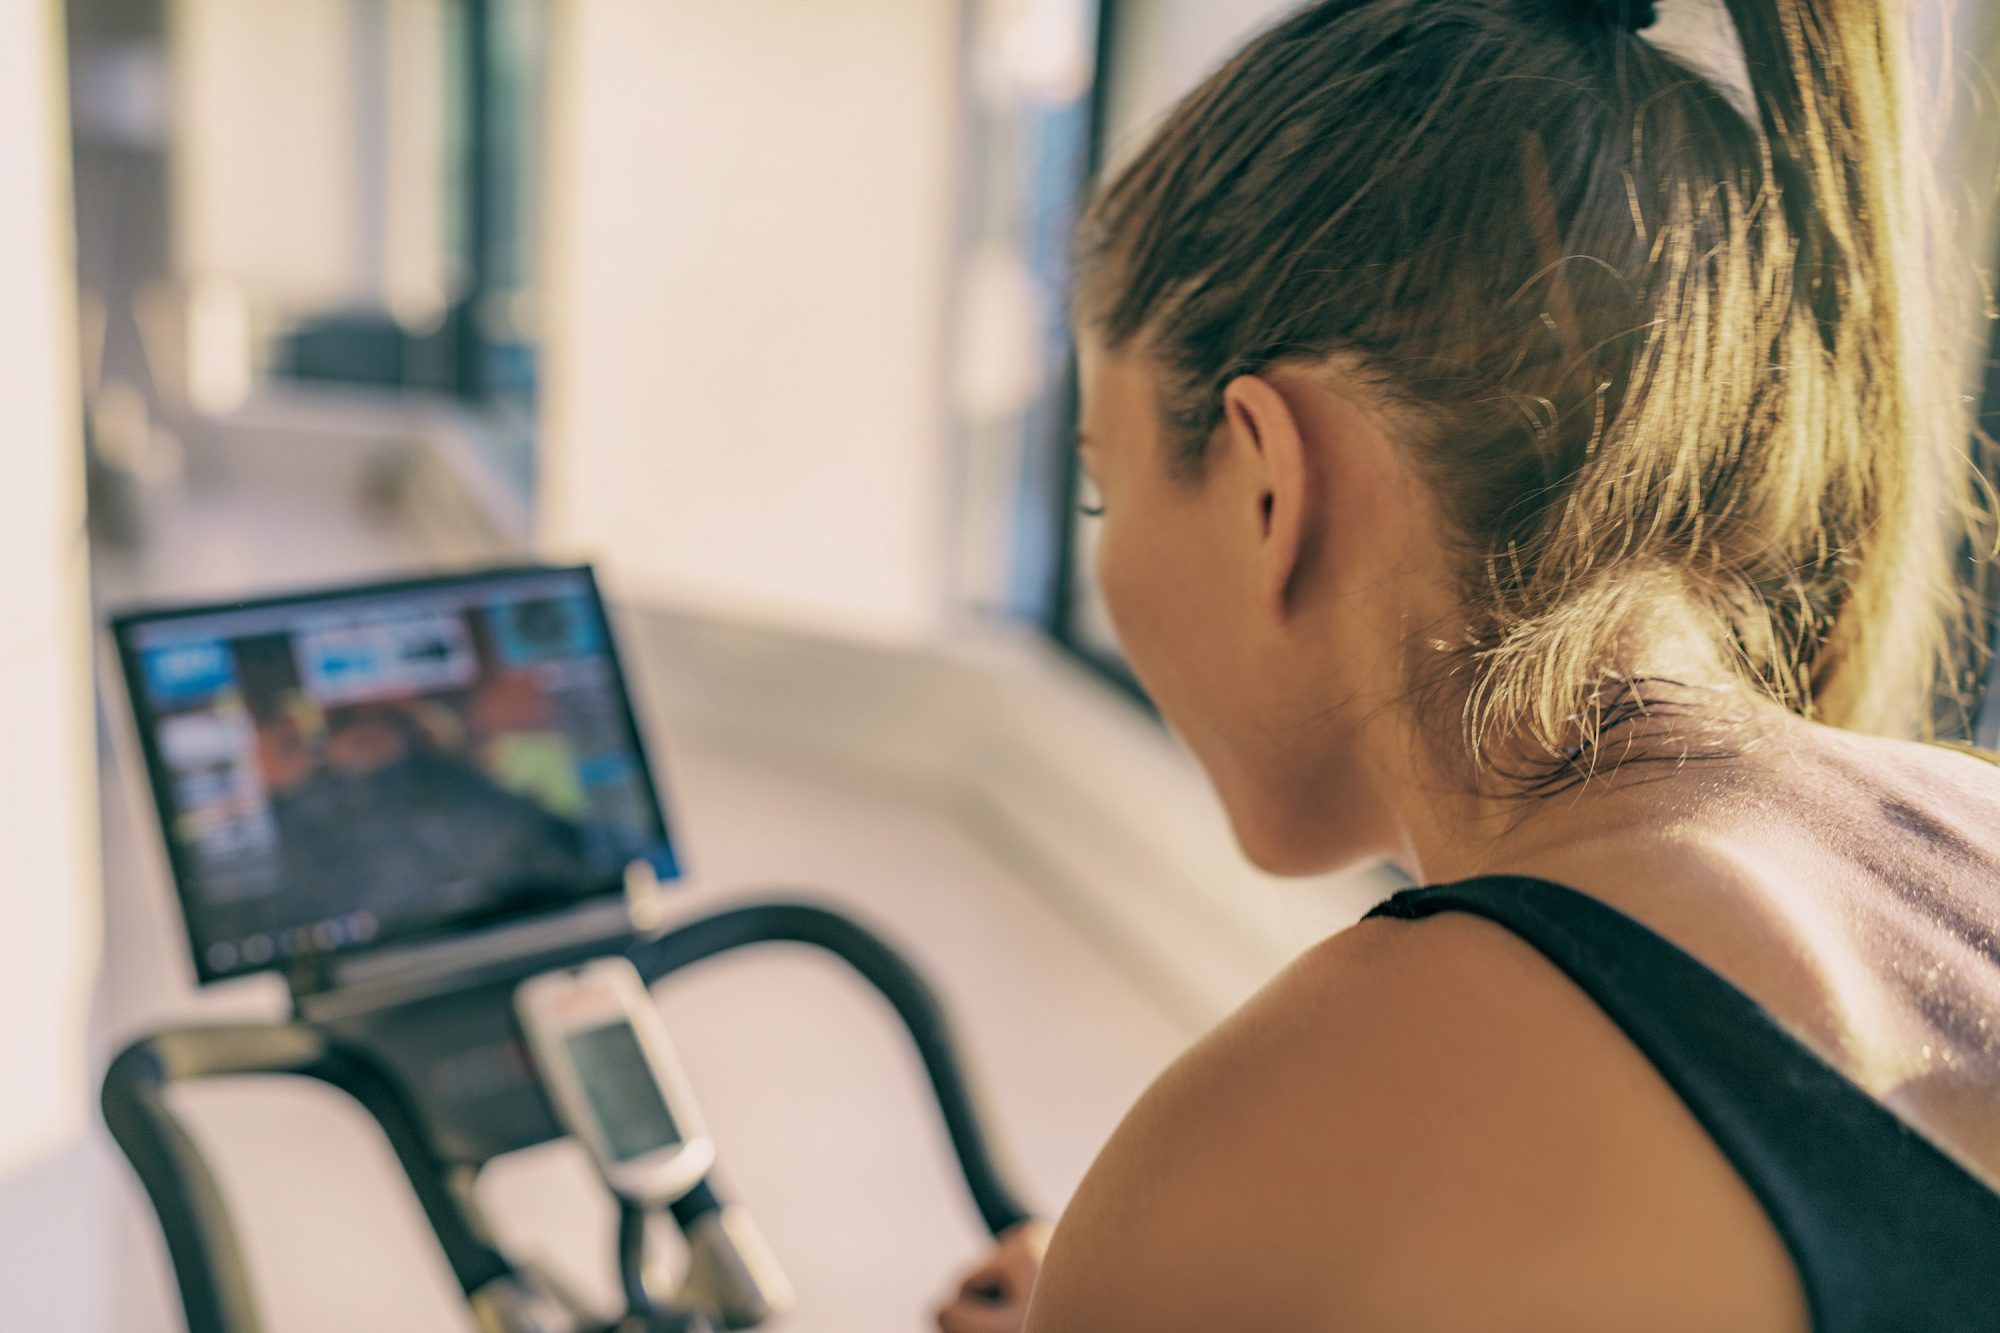 peloton bike alternatives , Smart fitness home workout biking screen with online classes woman training on stationary bike equipment indoors for biking exercise. Indoor cycling. Focus on the sweat on person's back.